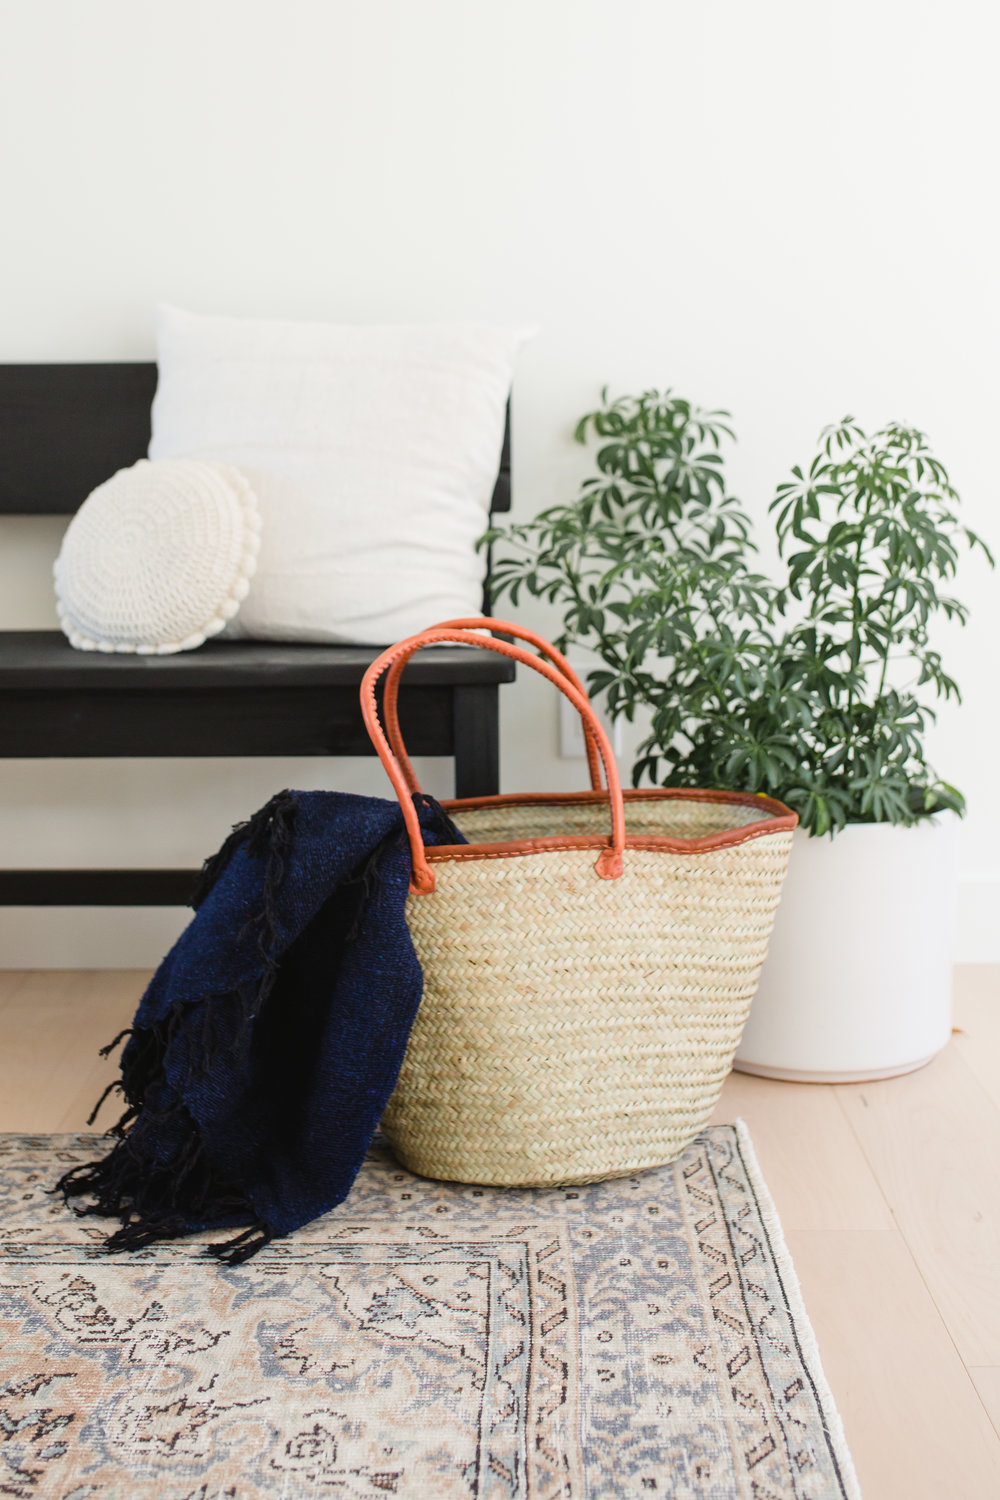 3. Catch It All - Add a basket to your space to catch all of the loose items in a room like throw blankets, shoes, etc.